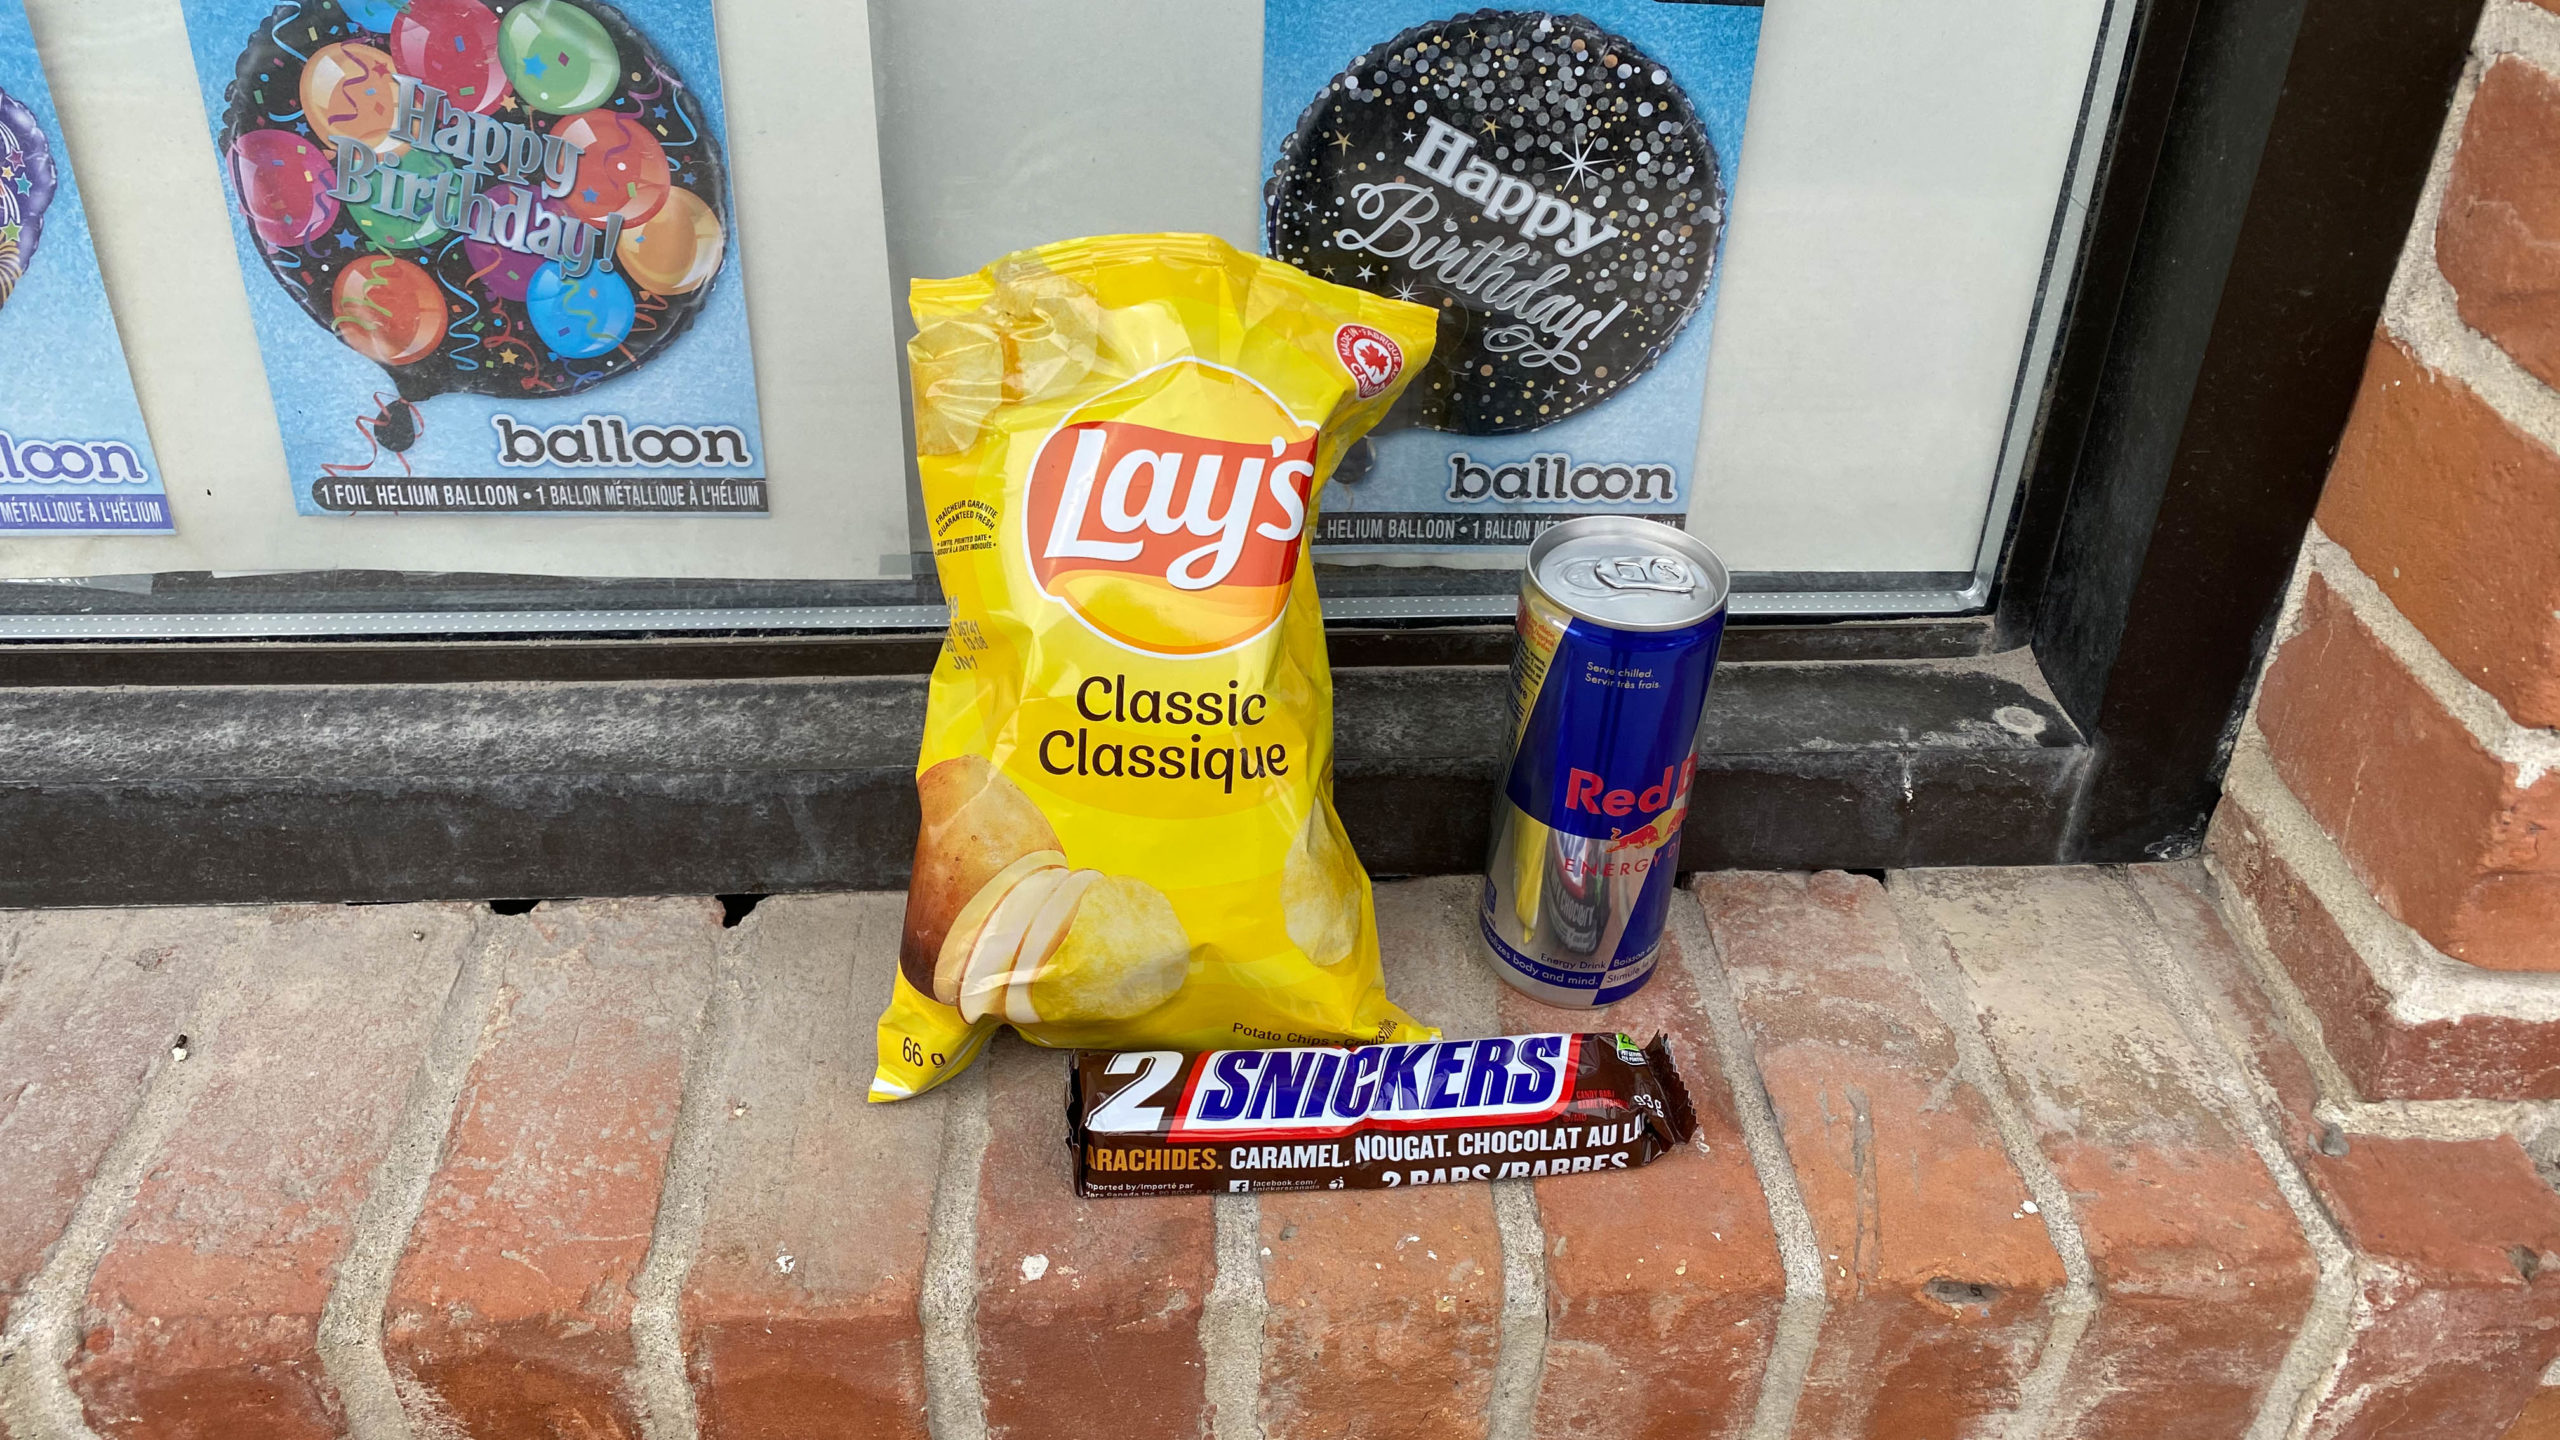 Lunch of Champions, Lays, Snickers, and Red Bull